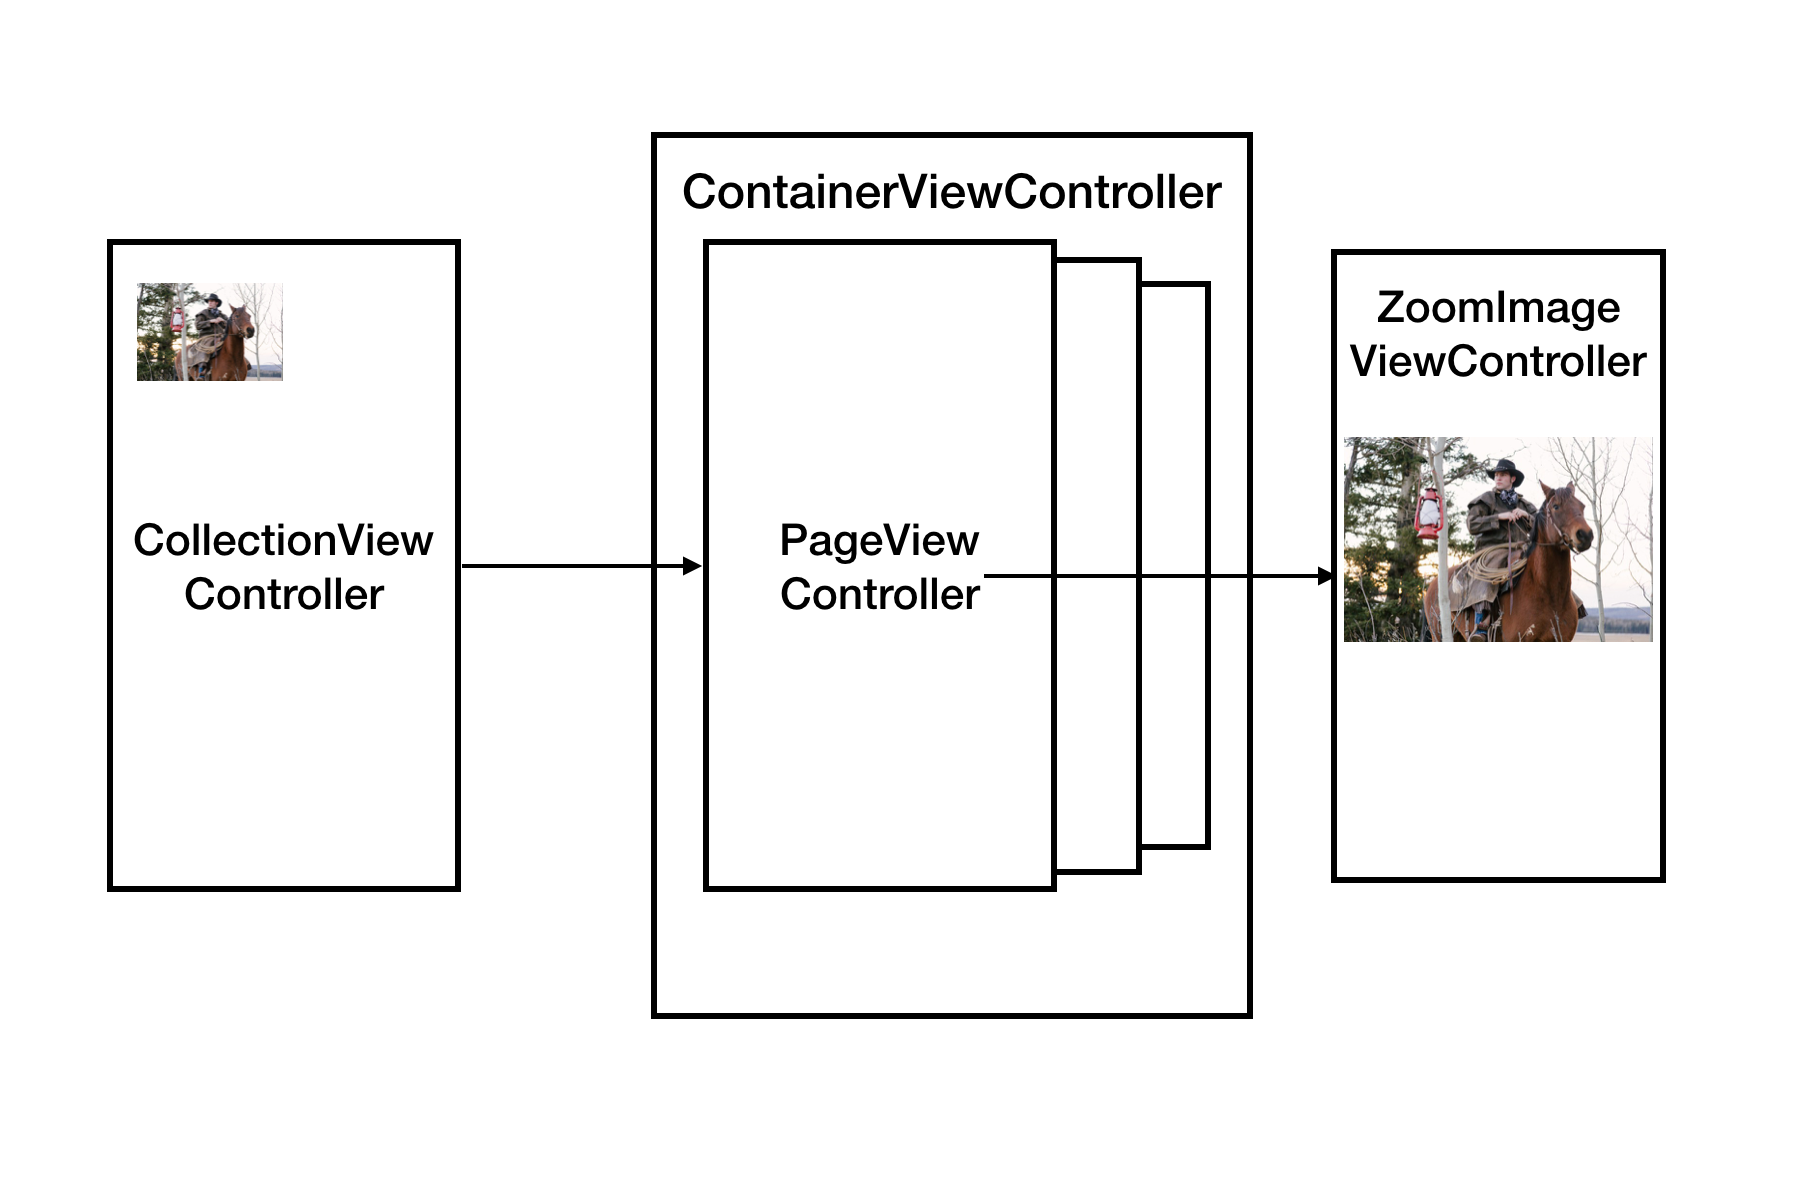 viewcontrollers.png